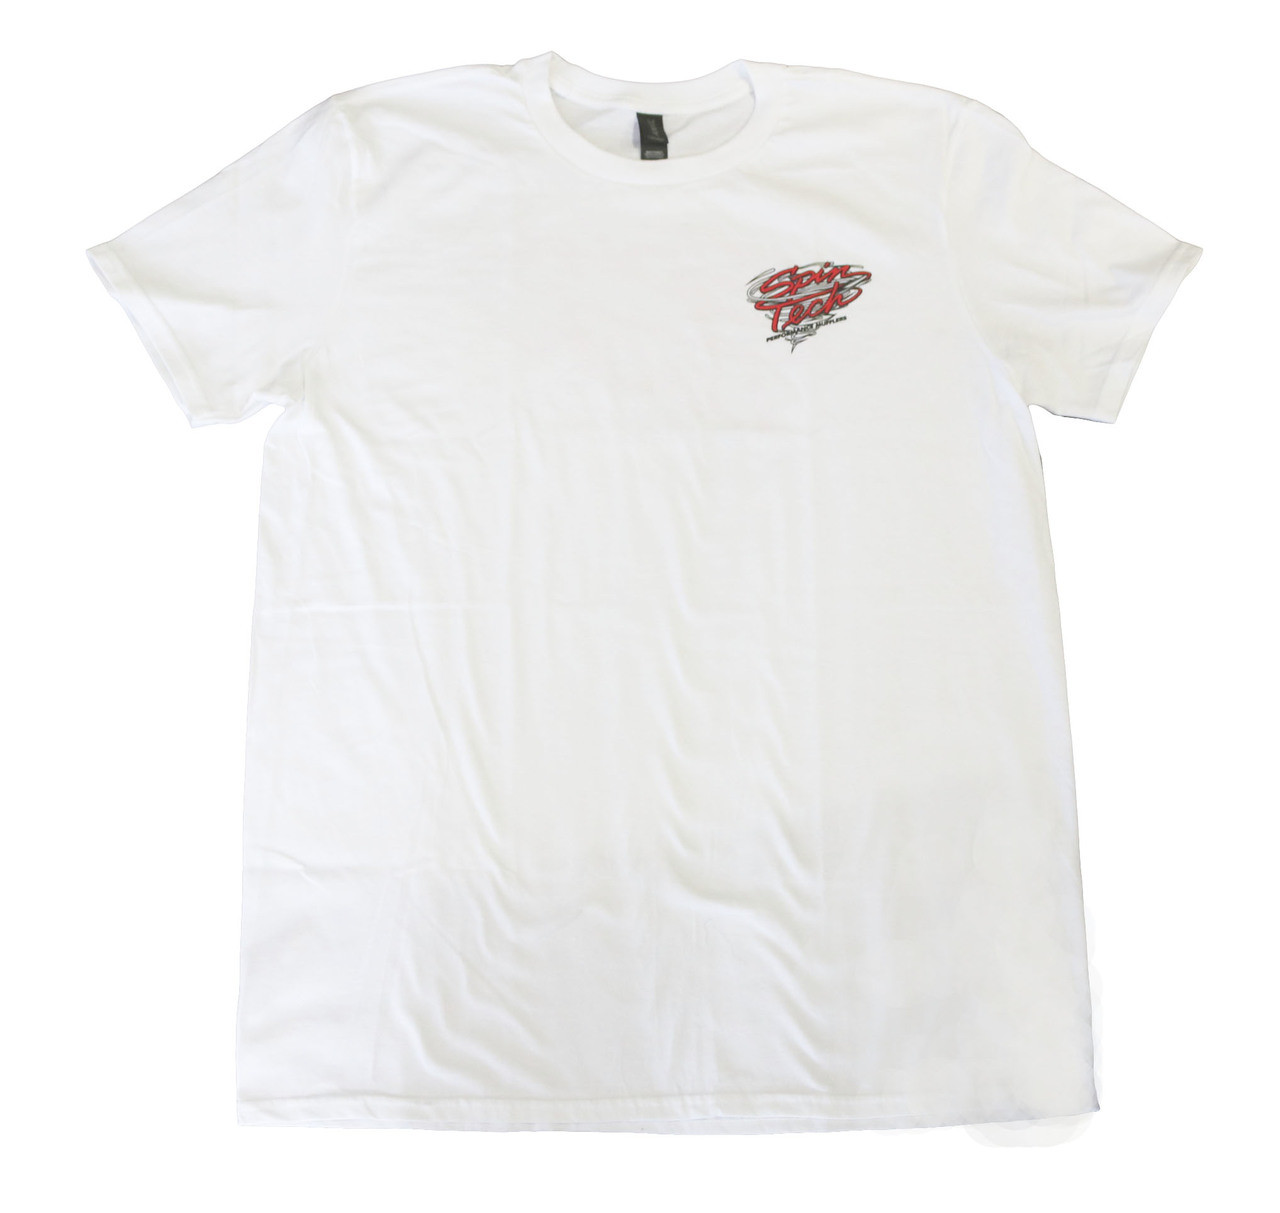 SpinTech T Shirt White Front